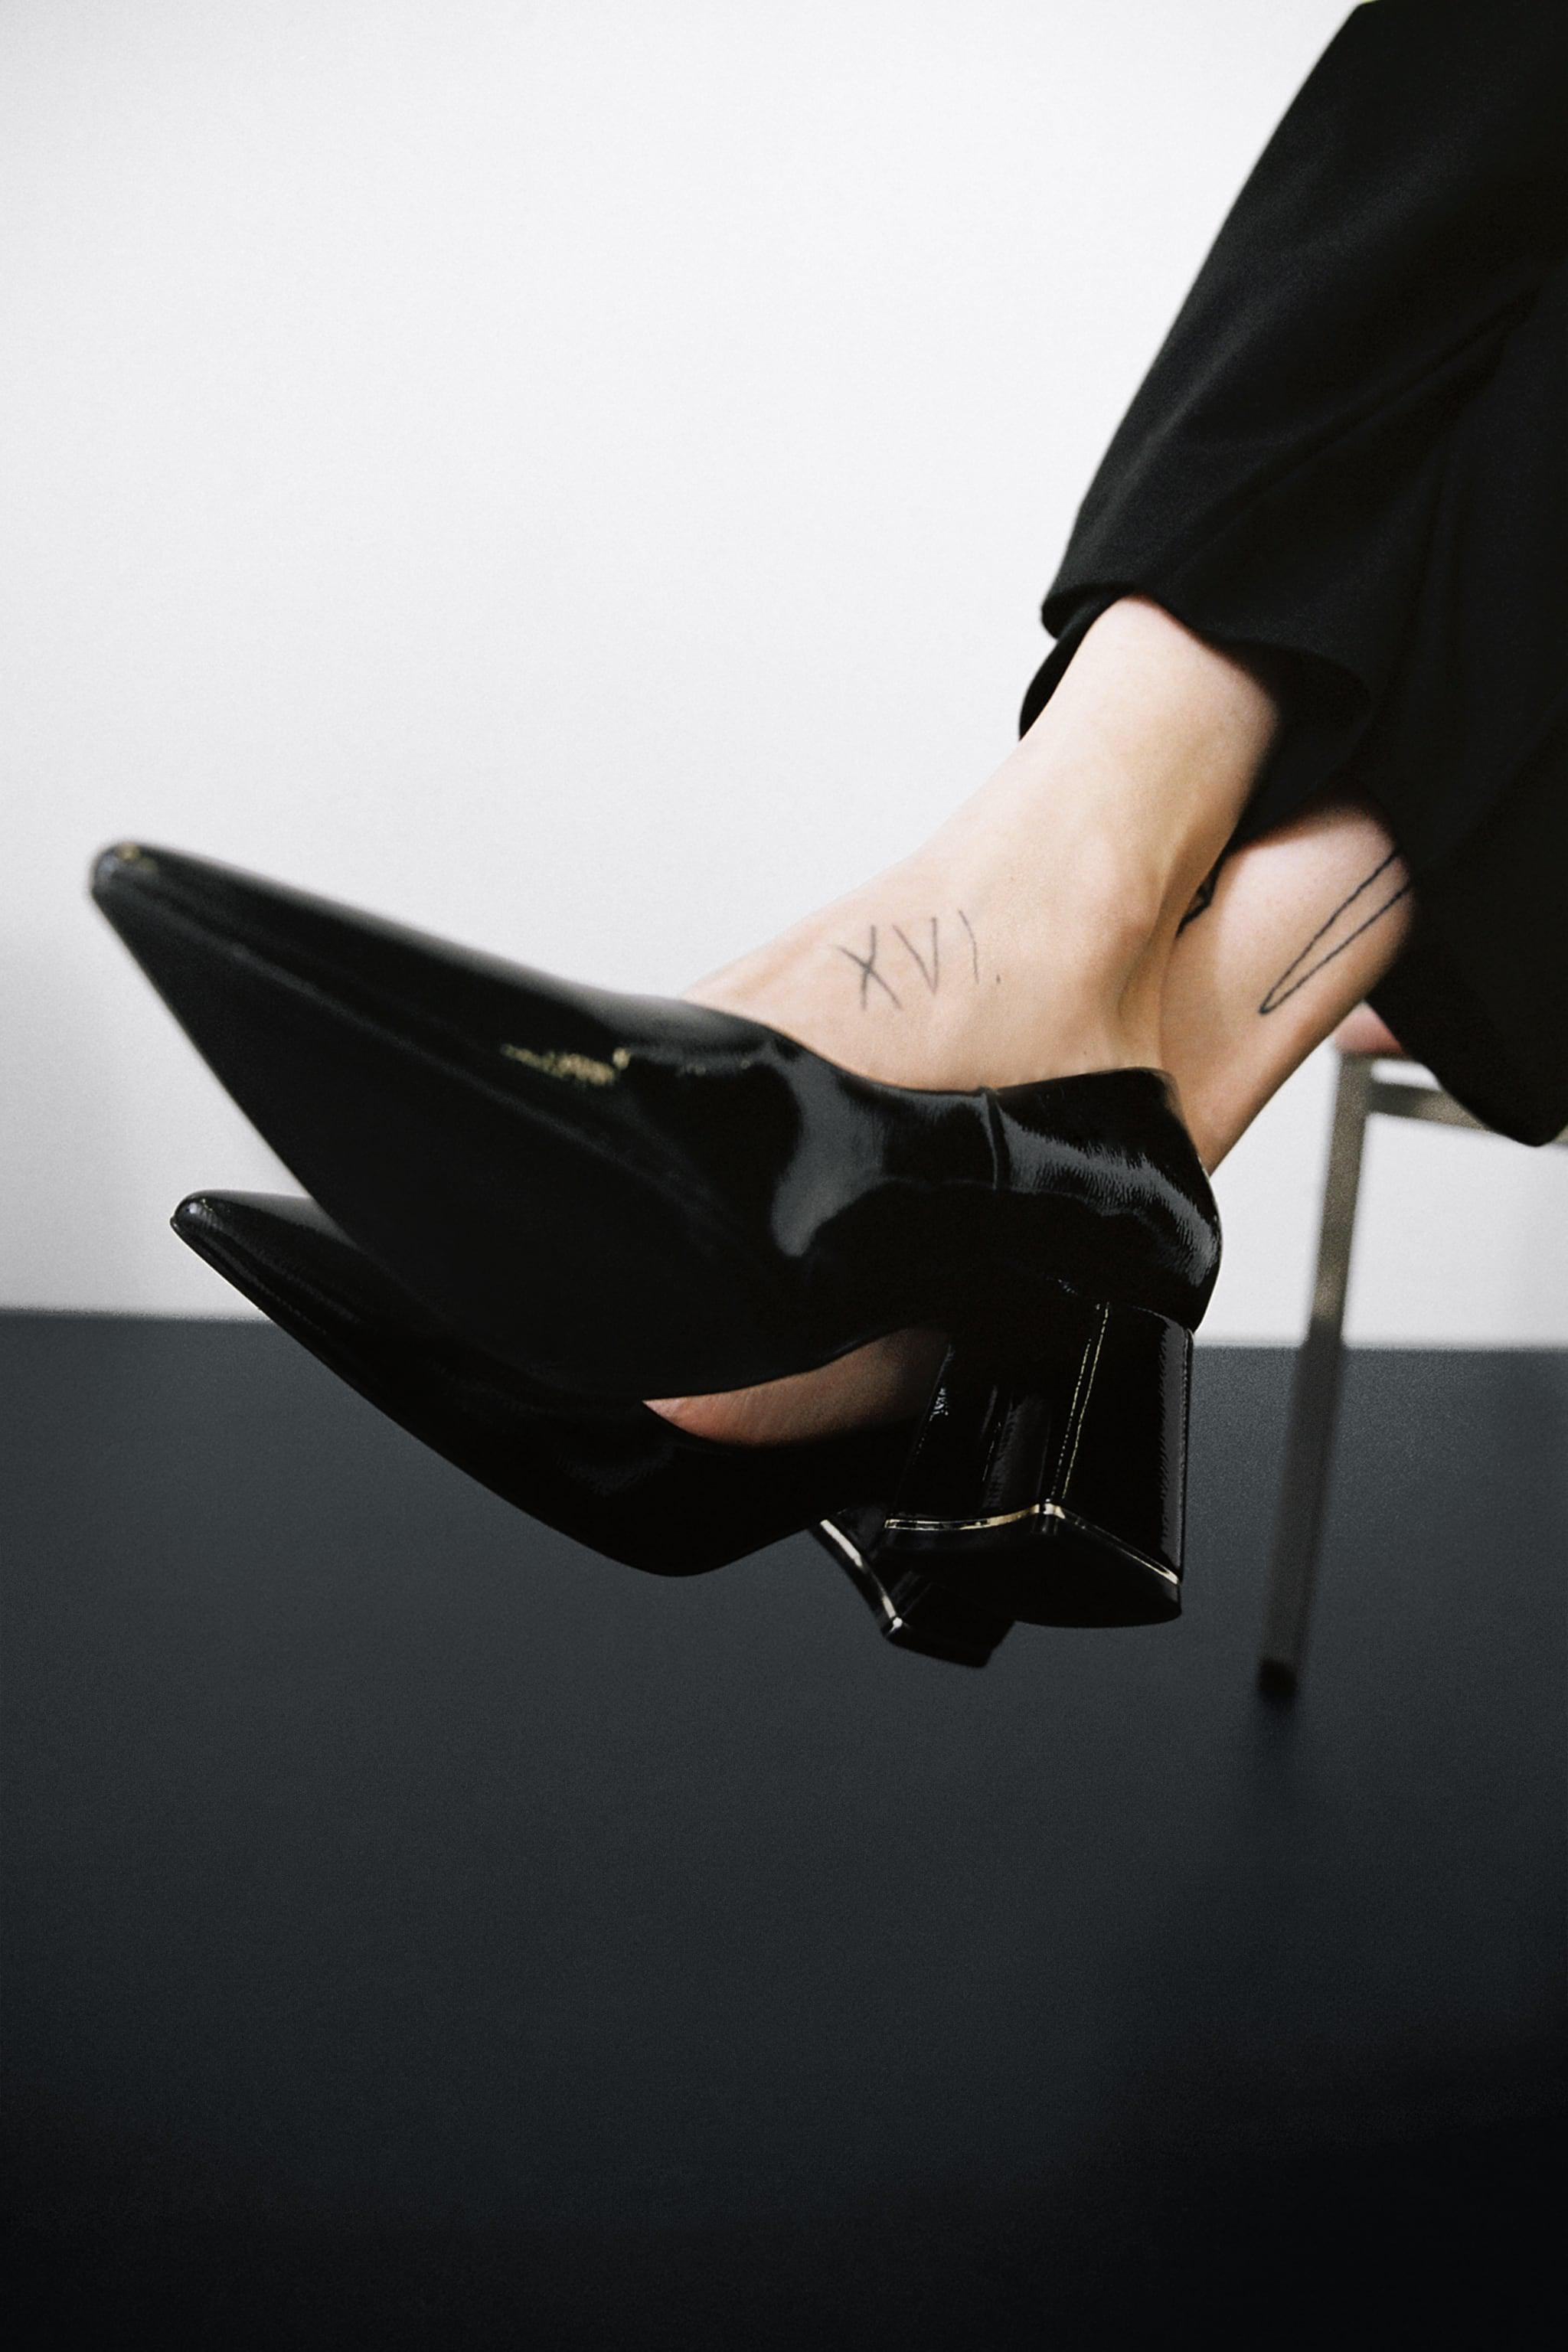 PATENT FINISH WIDE HEEL SHOES